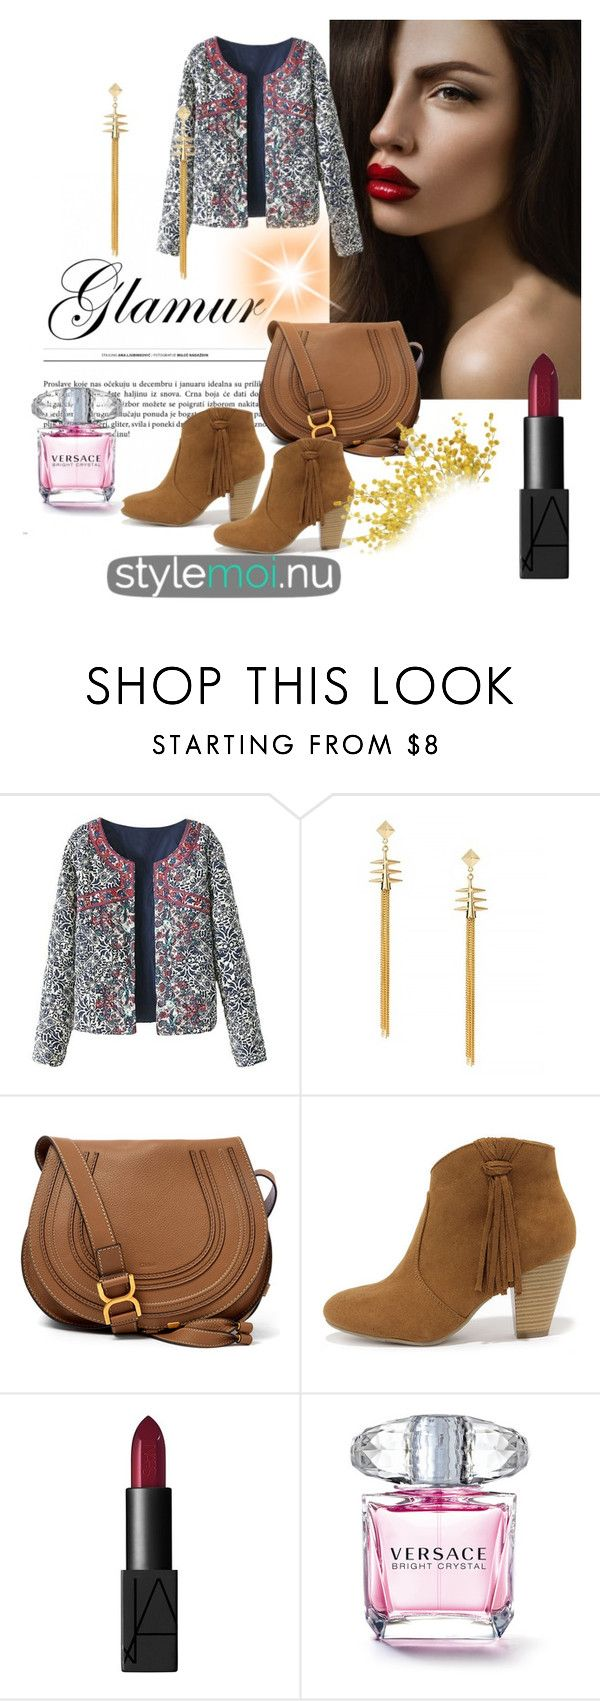 """Stylemoi 1"" by nermina-hasic ❤ liked on Polyvore featuring Chloé, Report, NARS Cosmetics and stylemoi"